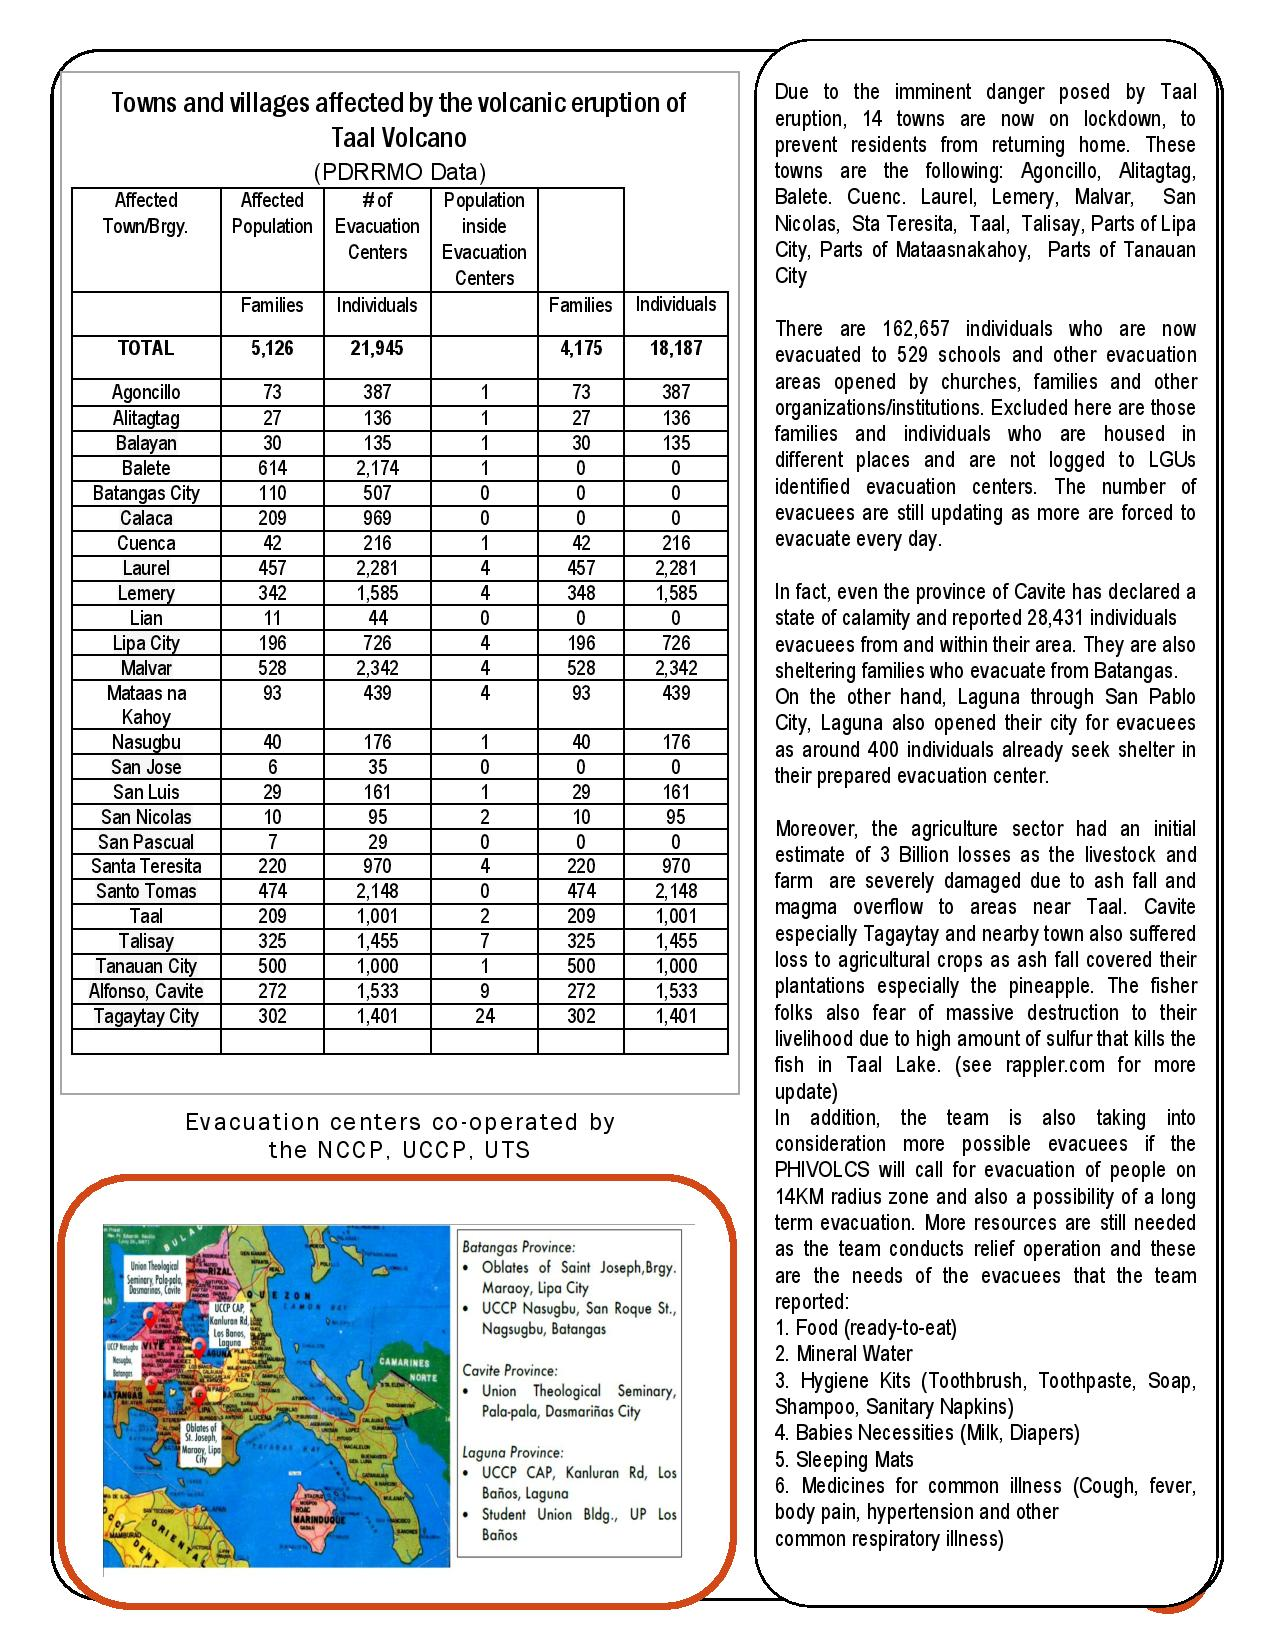 2020-Disaster-Impact-Response-Bulletin -TAAL VOLCANO ERUPTION-Edited-page-003